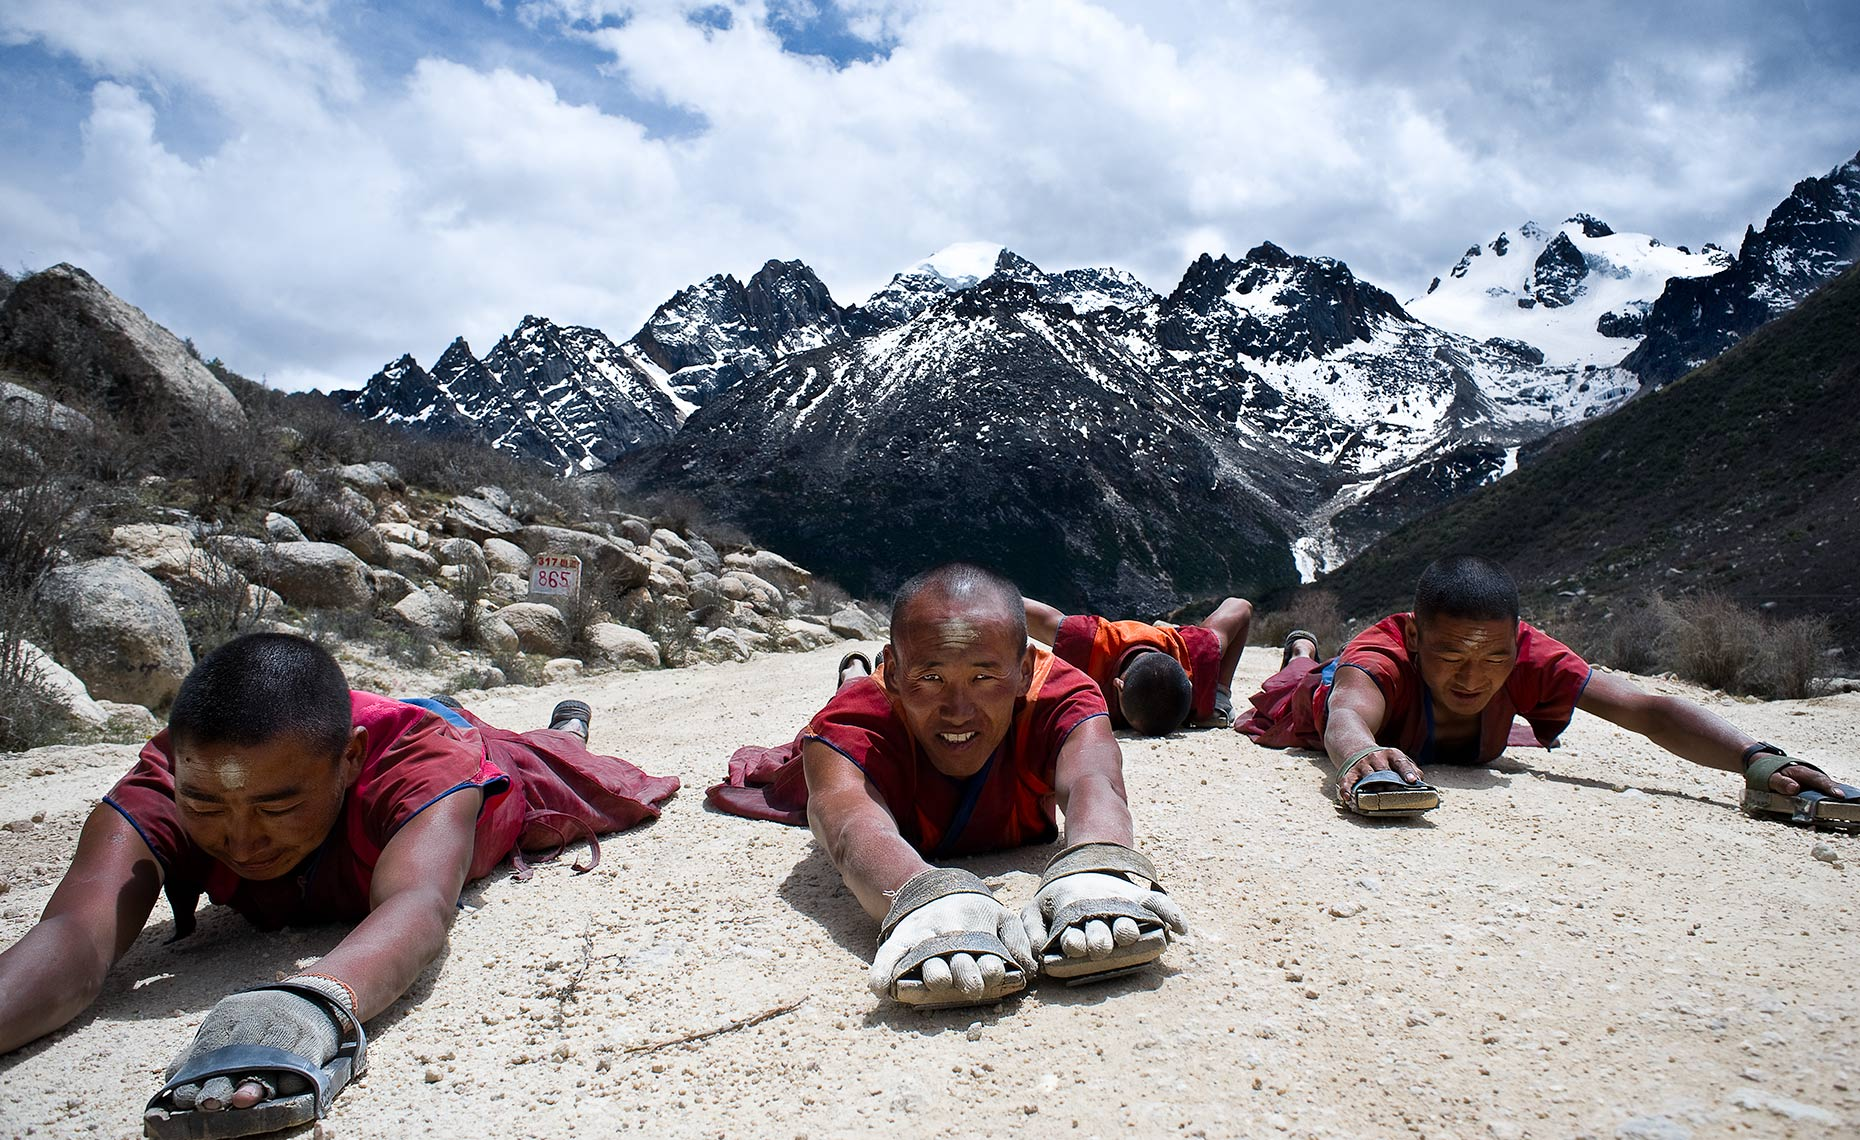 Tibetan Buddhist monks crawling for two years on their way to Lhasa Tibet.. Photo © Konstantino Hatzisarros 2010